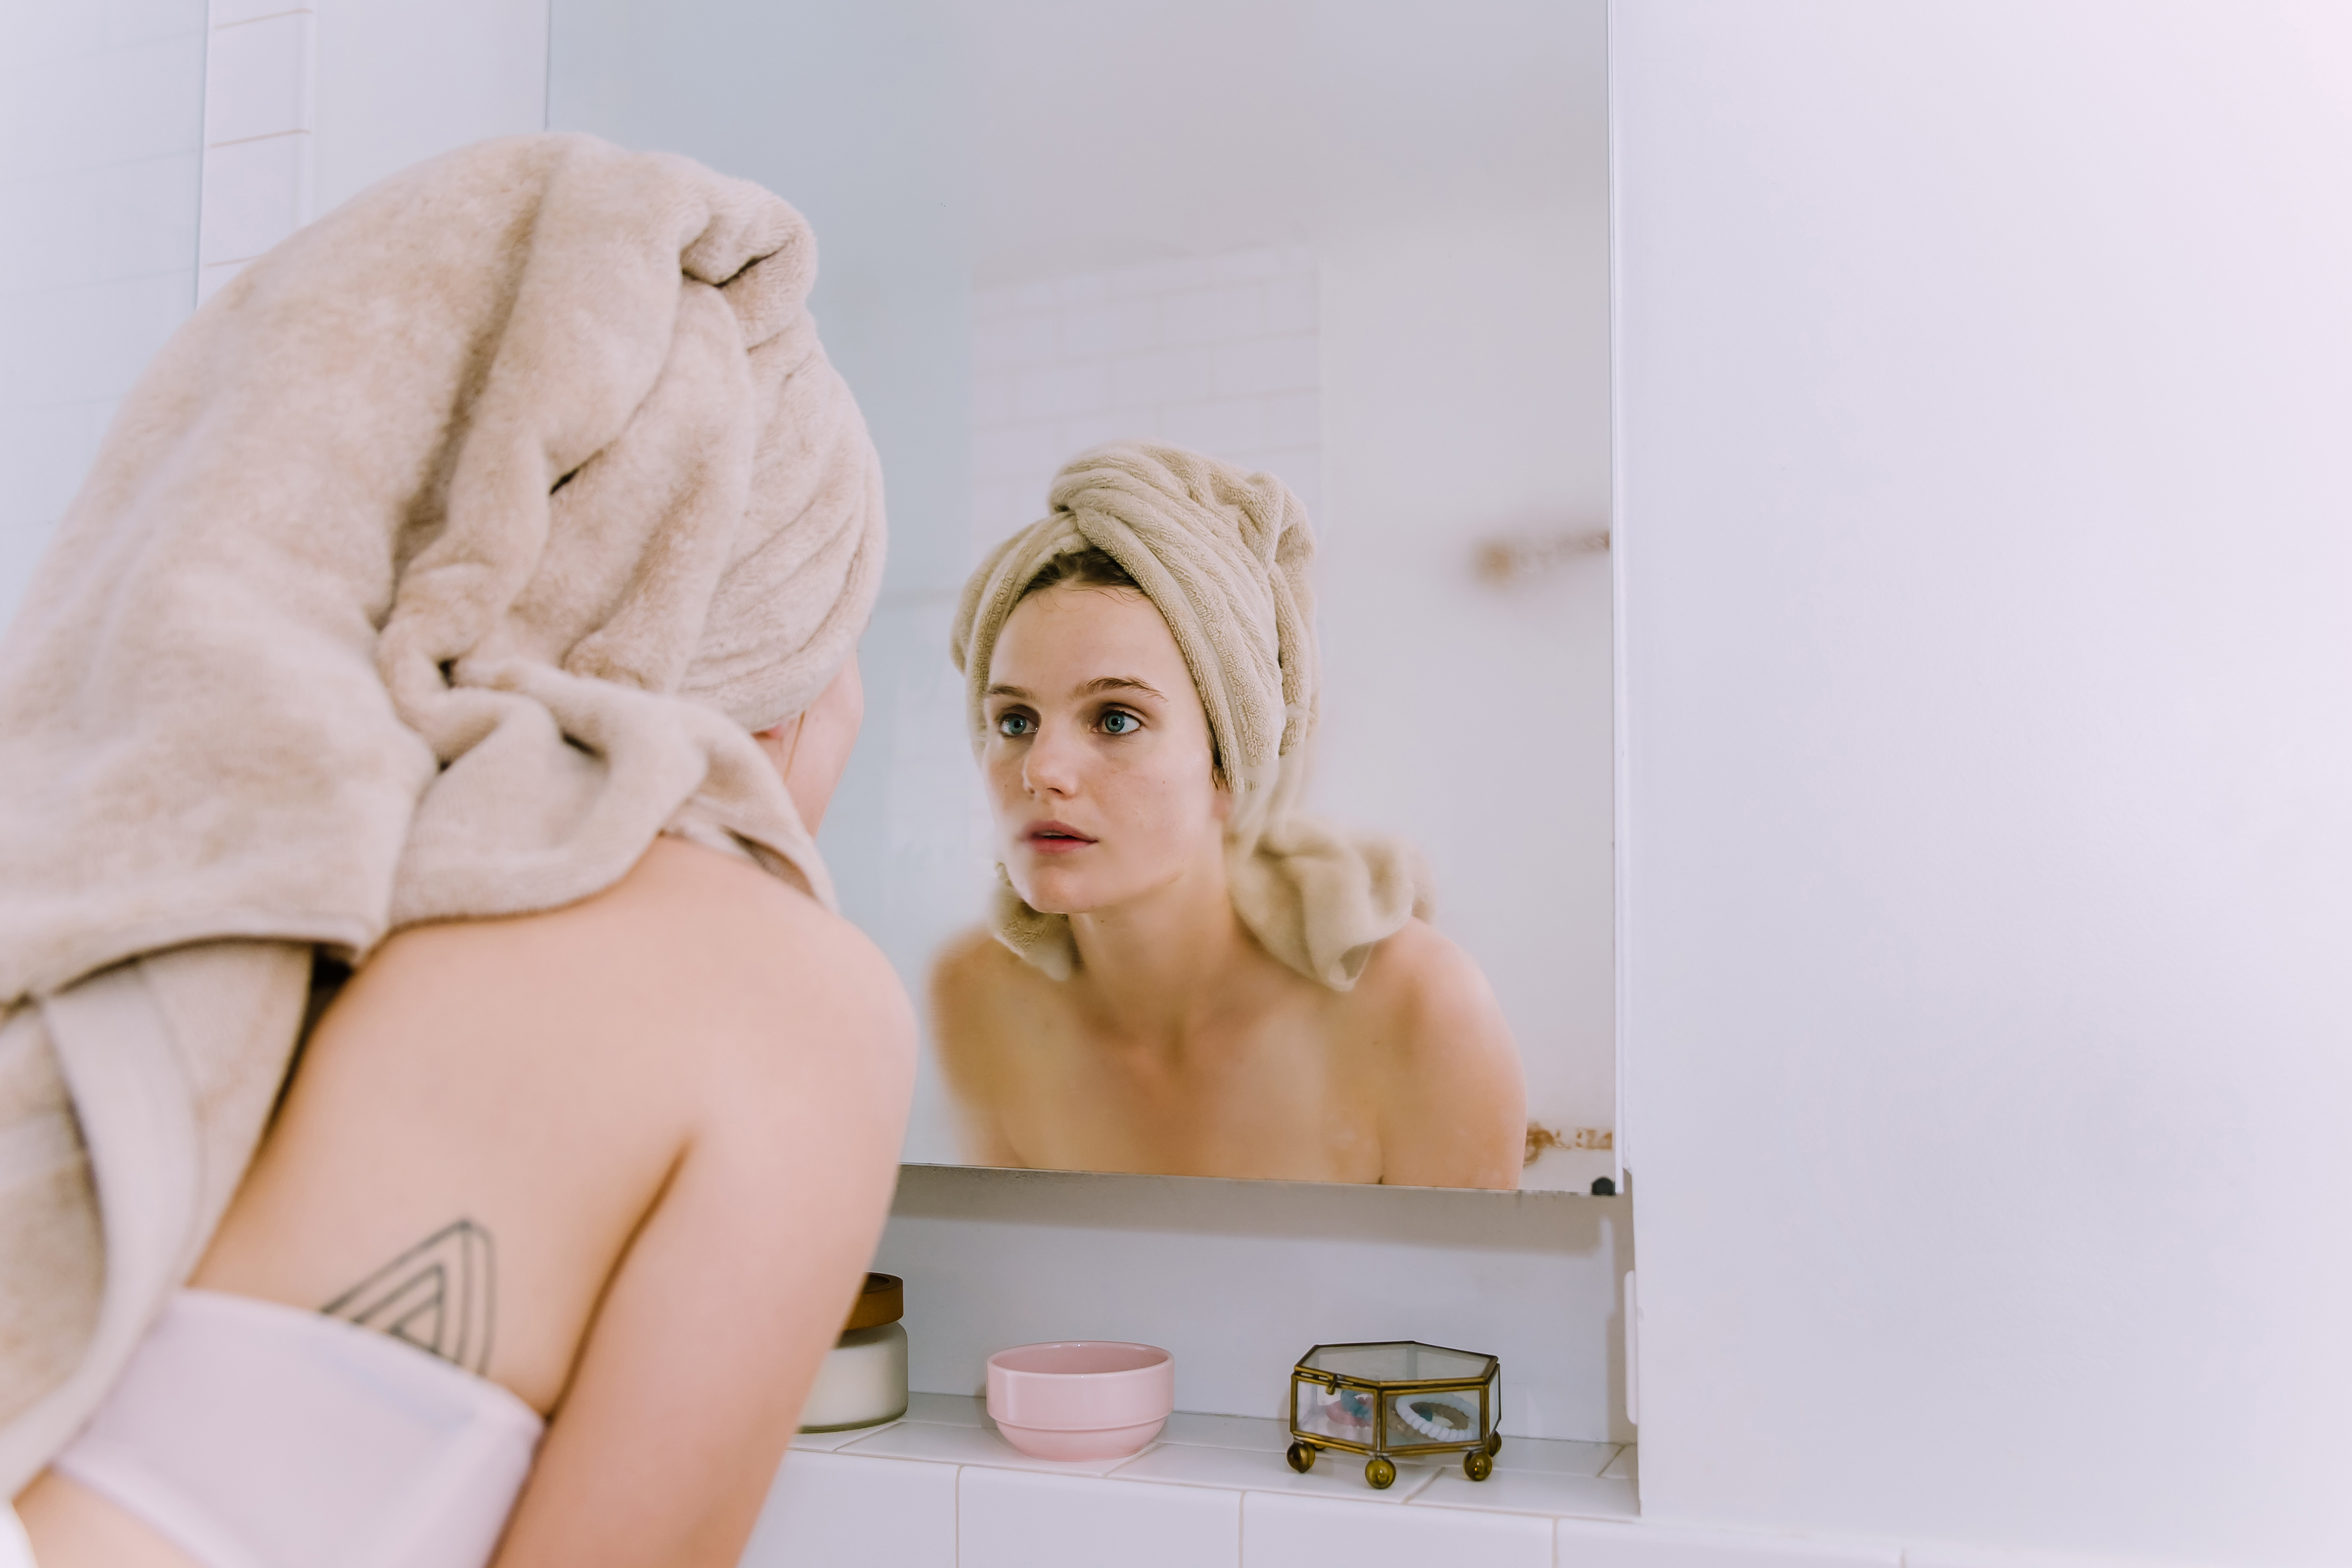 Prose model looking at herself in the bathroom mirror with a towel wrapped on top of her head